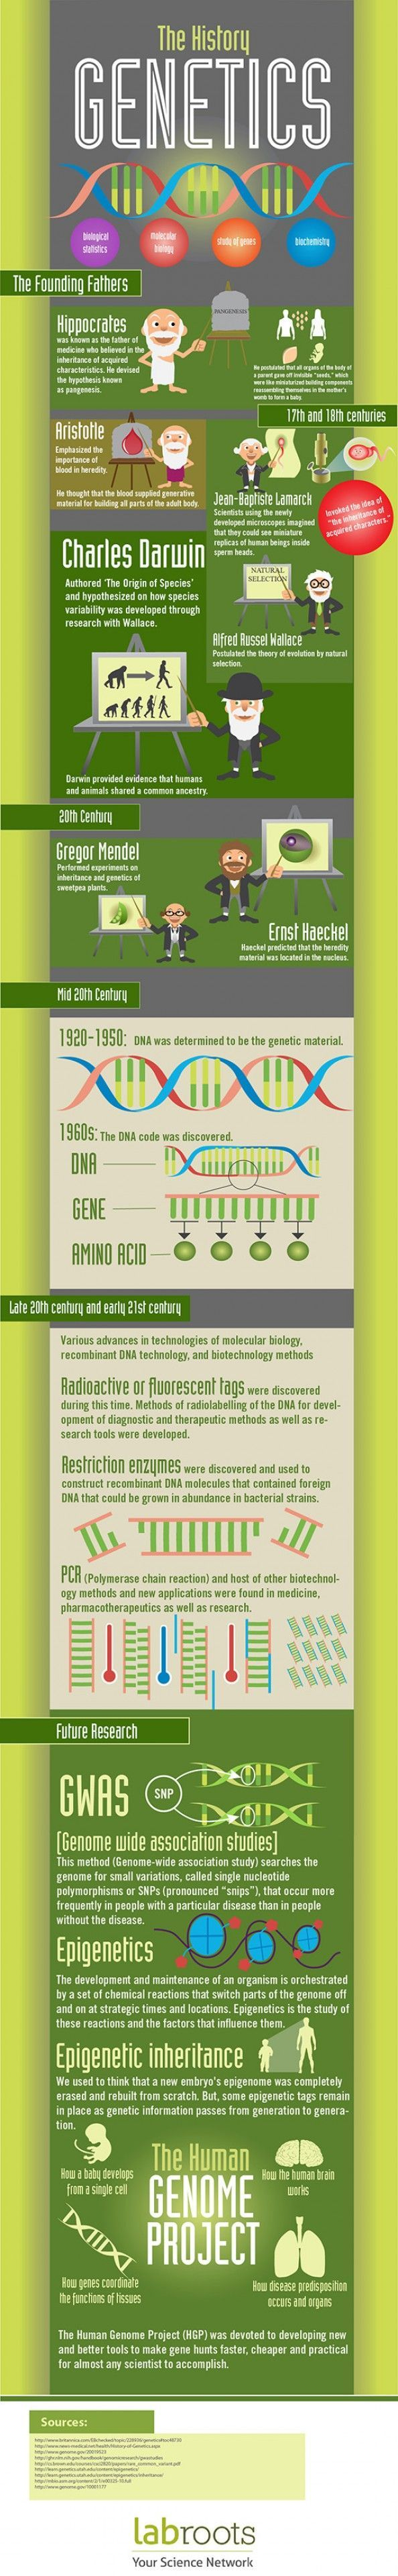 The History of Genetics Infographic. A lot of brilliant minds came together over a long time to get us where we are today with understanding what we're made of!